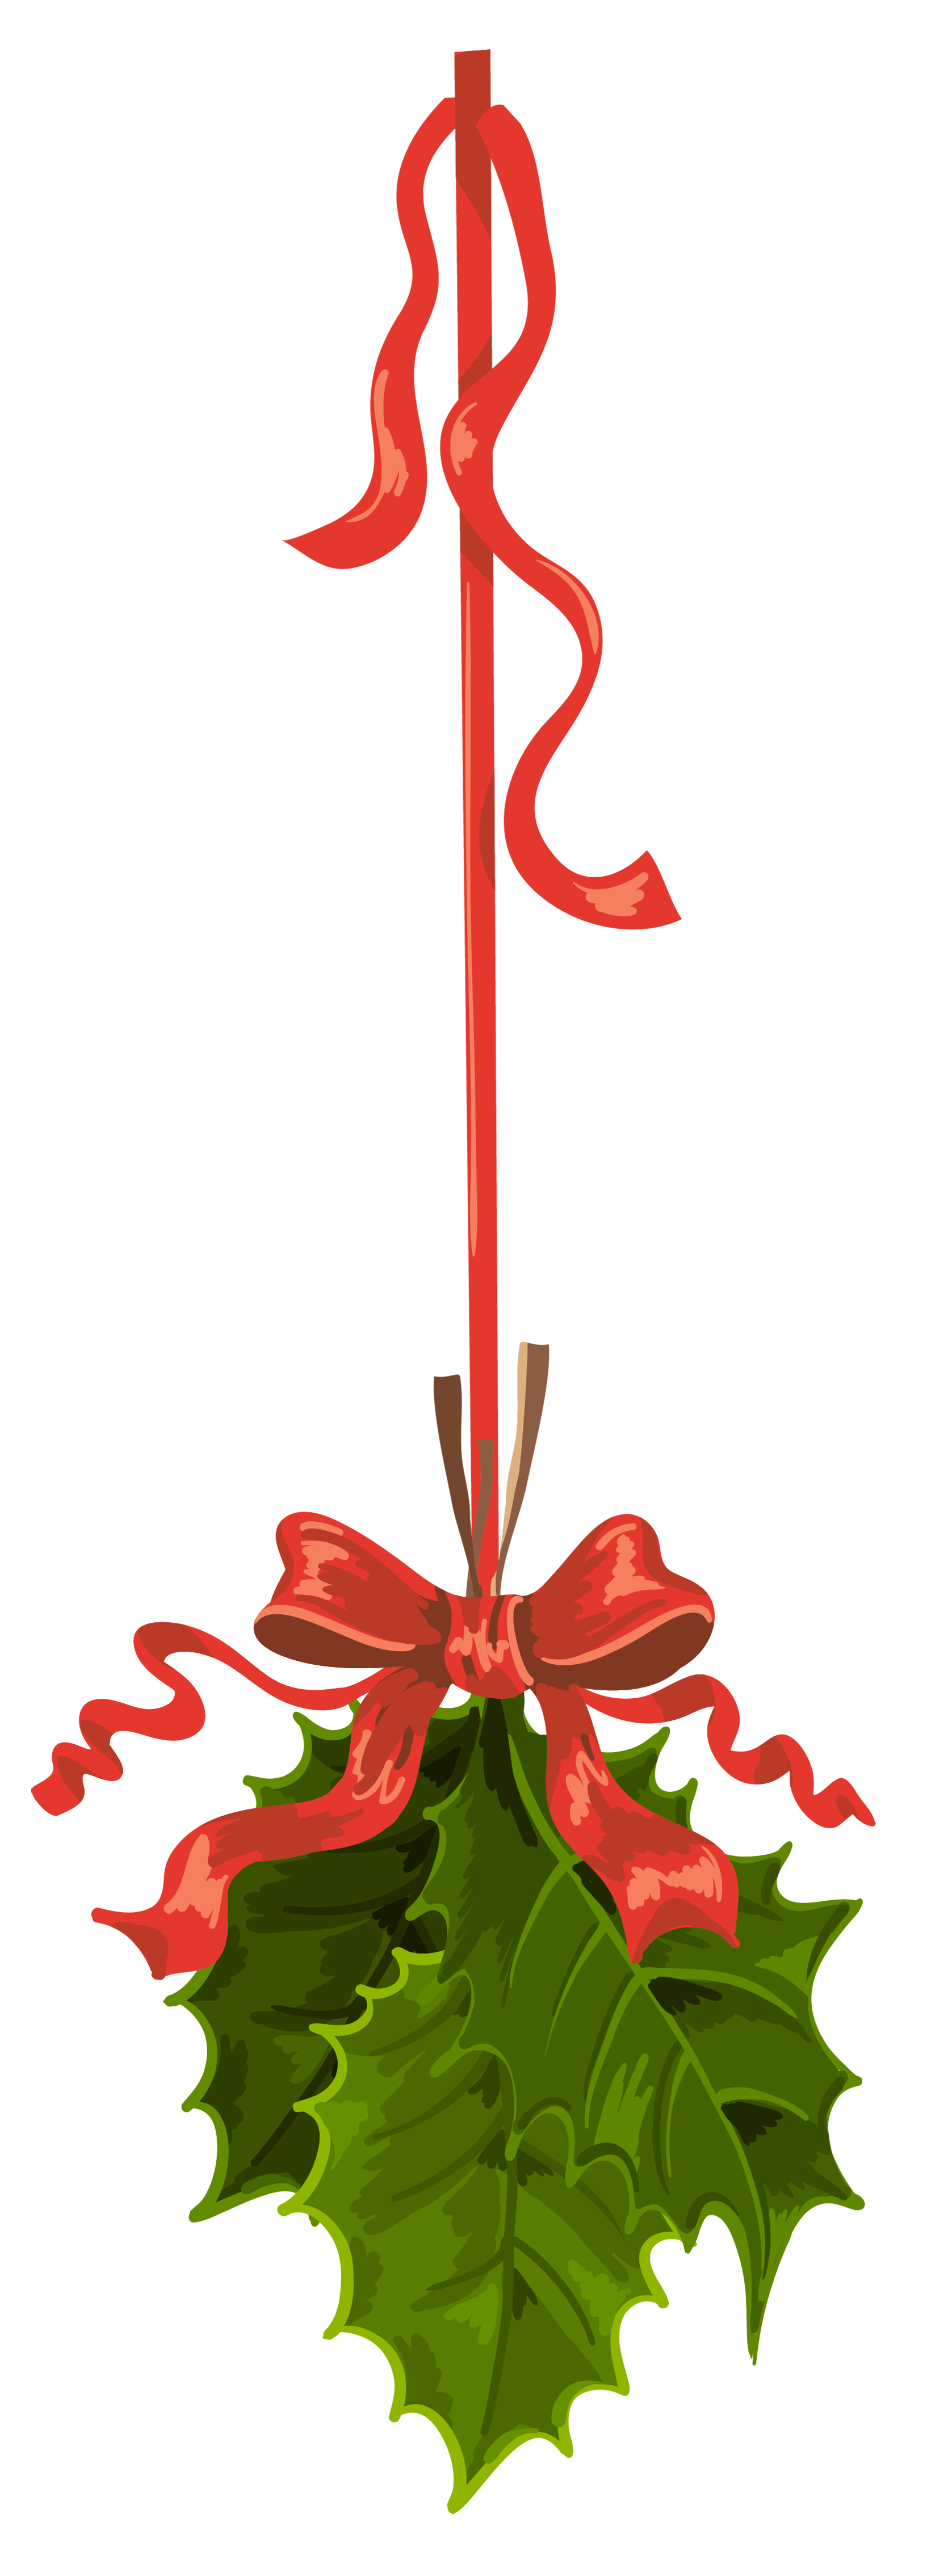 Transparent Christmas Hanging Mistletoe Png Clipart Gallery Yopriceville High Quality Images An Christmas Scrapbook Christmas Cutouts Flower Prints Framed